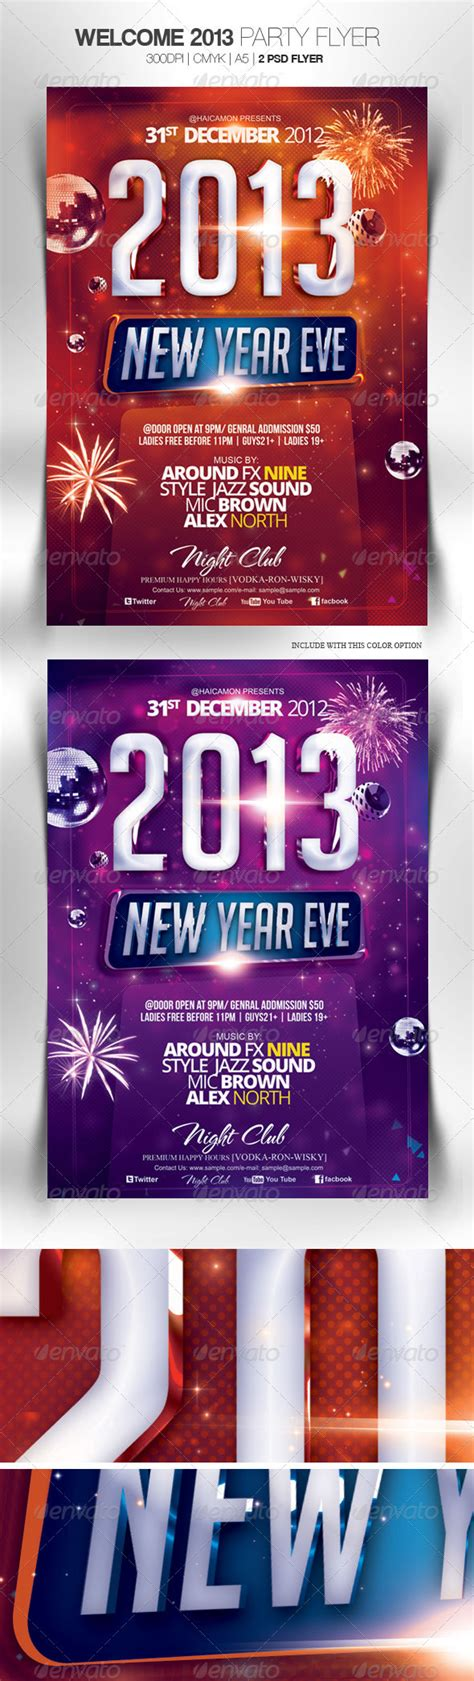 Template Flyer Party Mic 2013 Psd 187 Tinkytyler Org Stock Photos Graphics Welcome Flyer Template